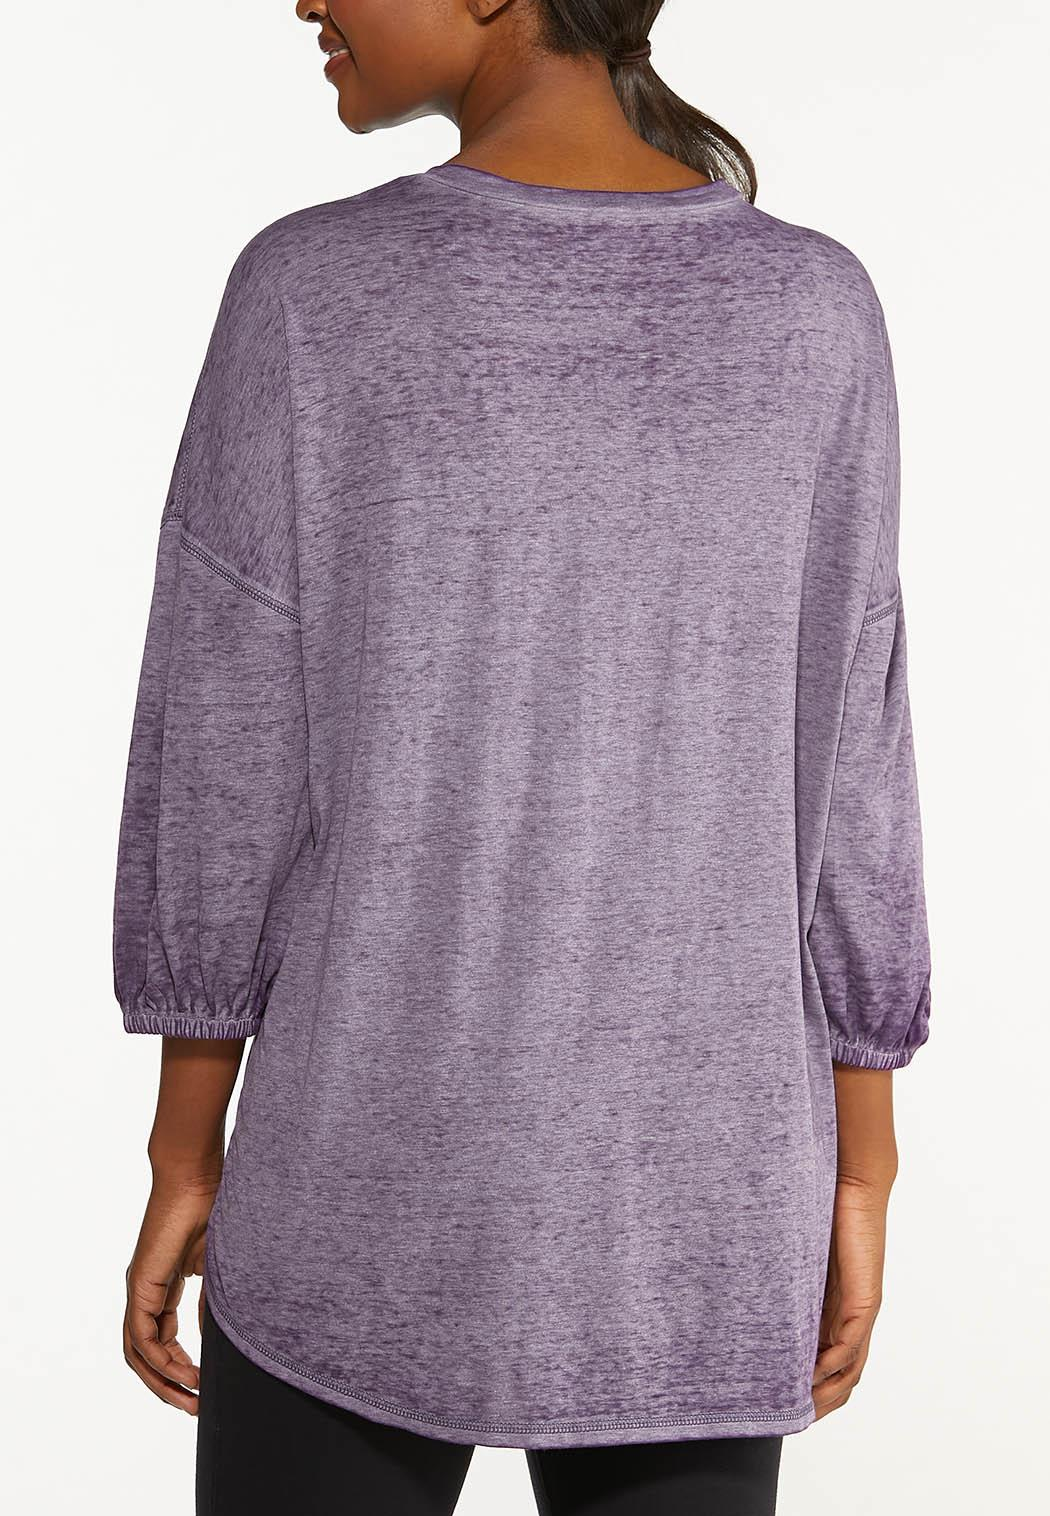 Plus Size Power In Kindness Tunic Top (Item #44567577)